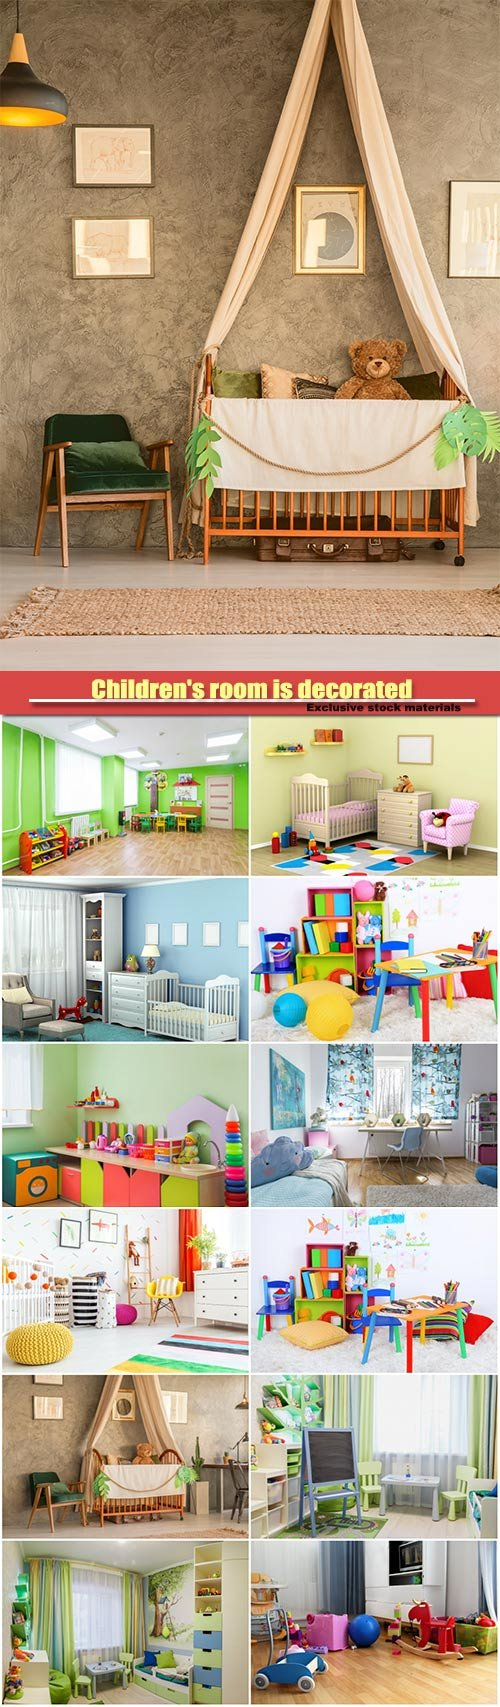 Children's room is decorated